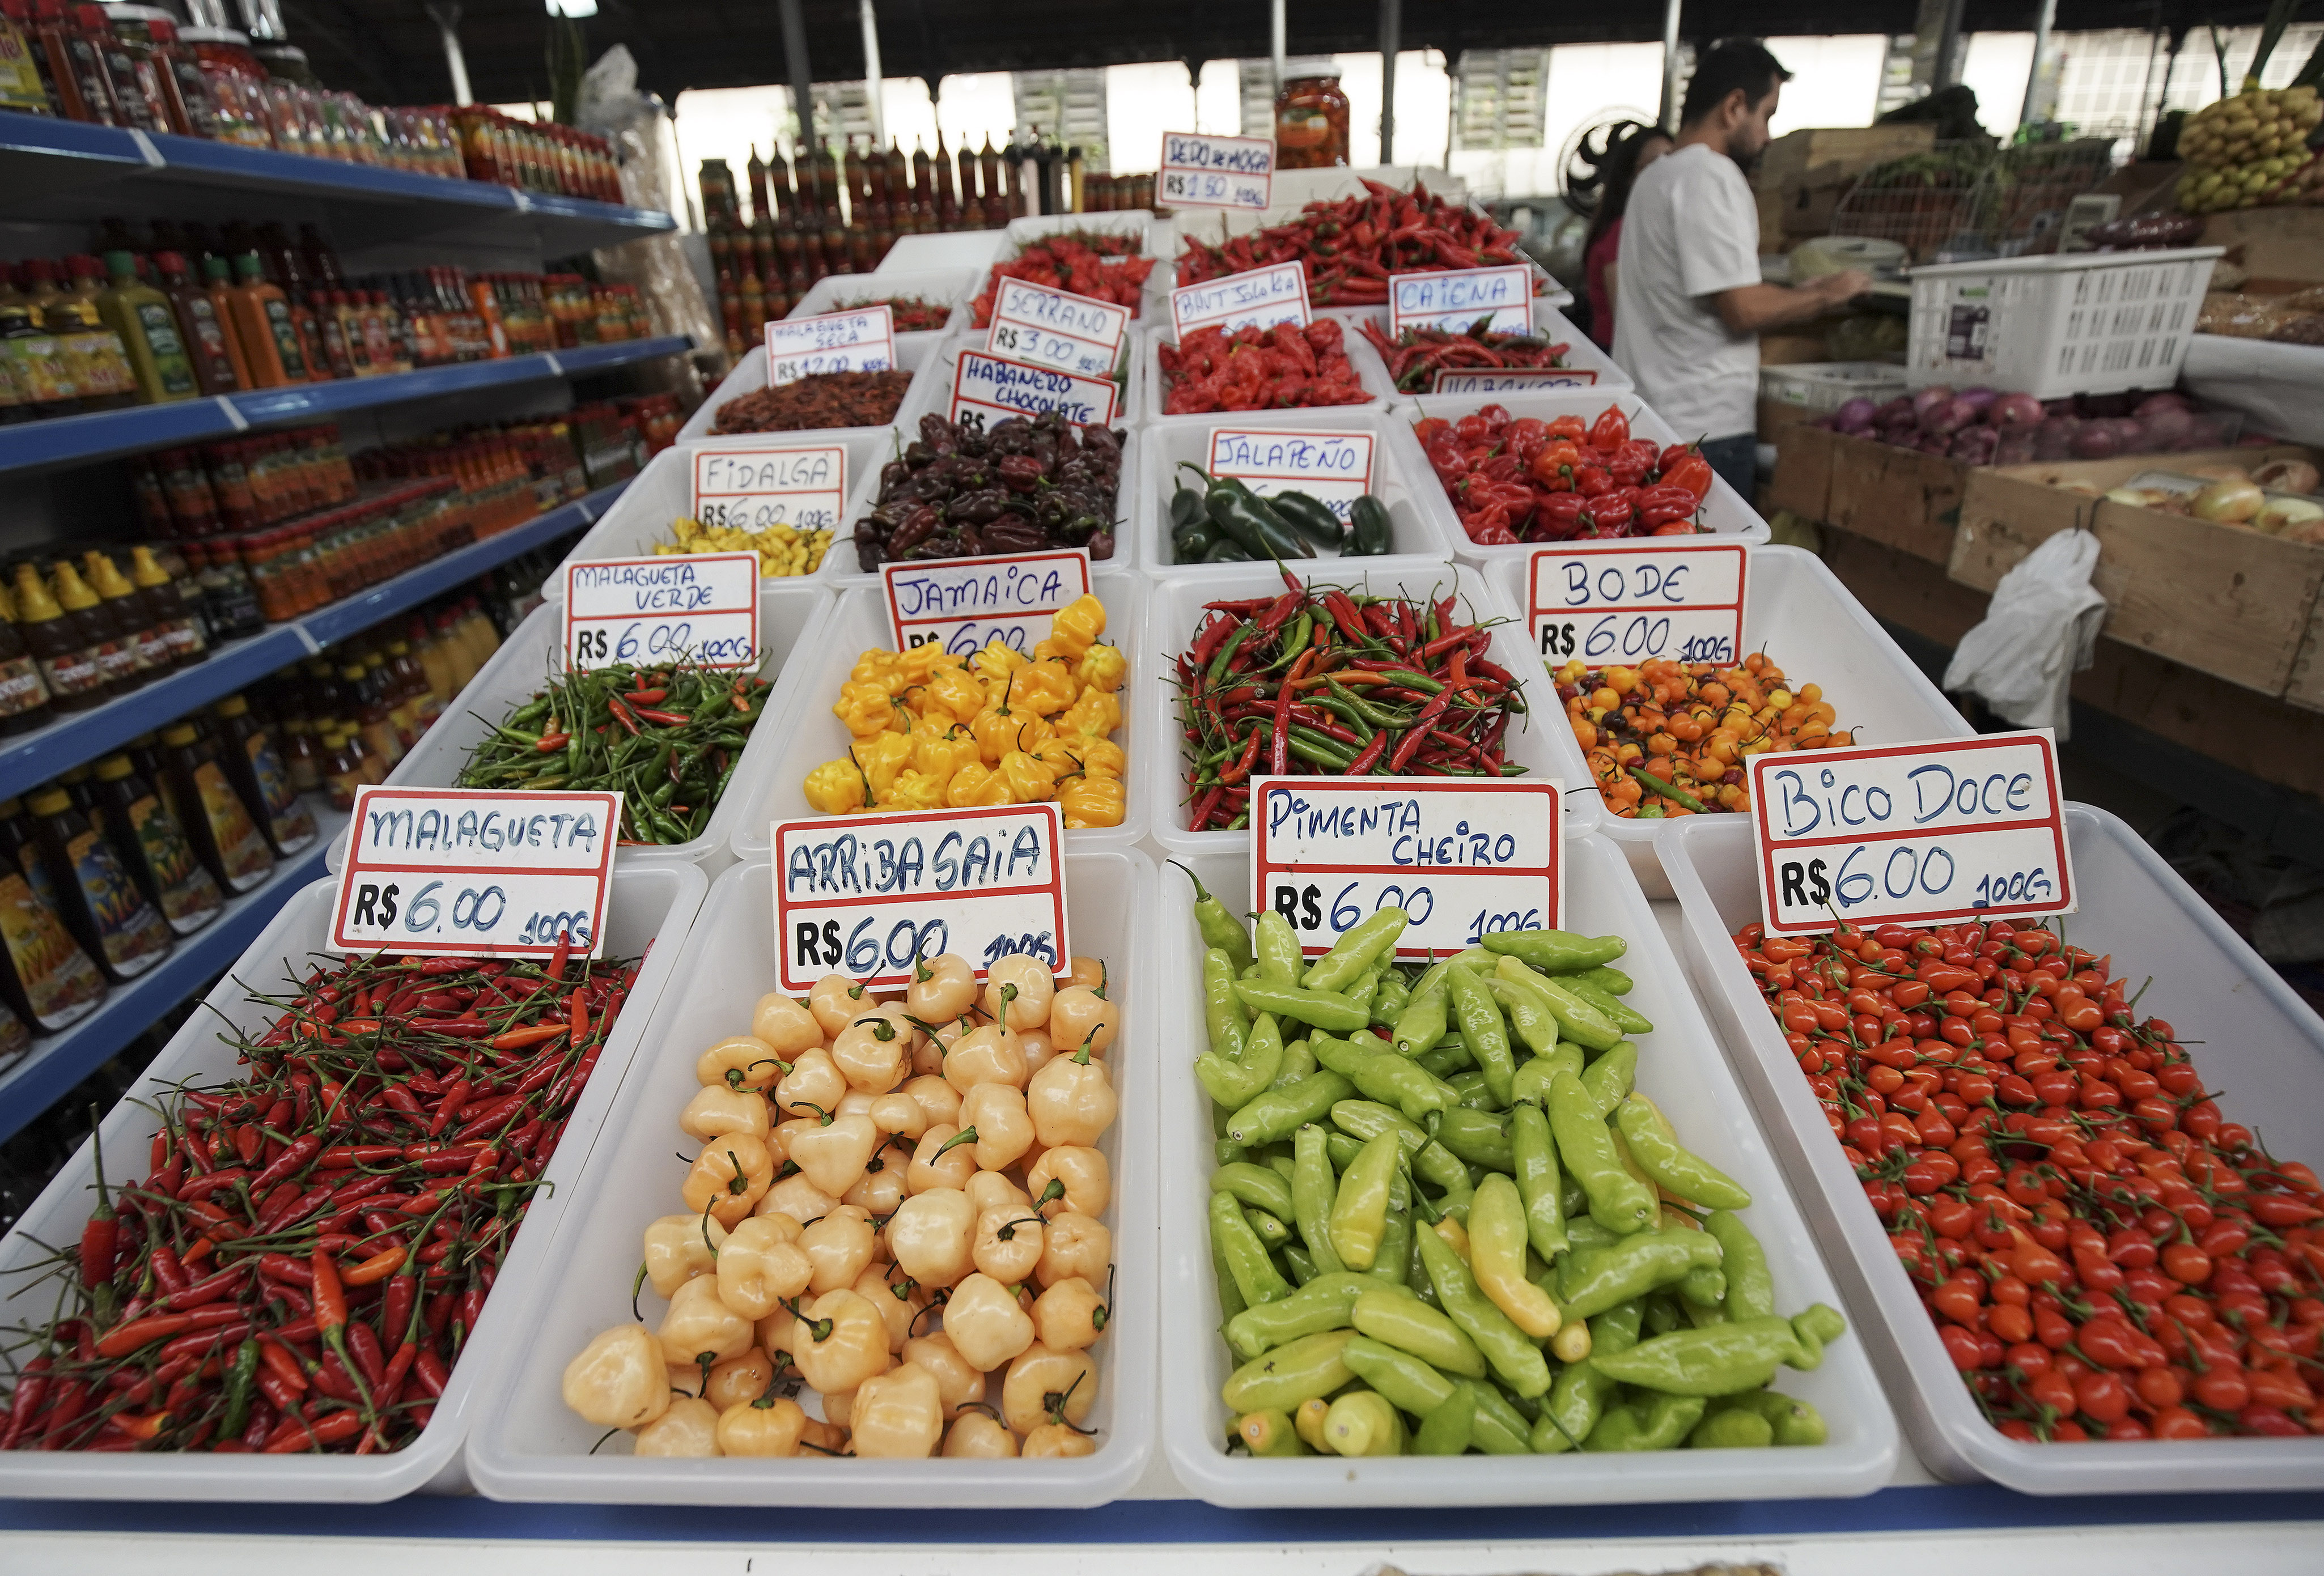 Vegetables are sold in the market in Sao Paulo, Brazil, on Aug. 31, 2019.